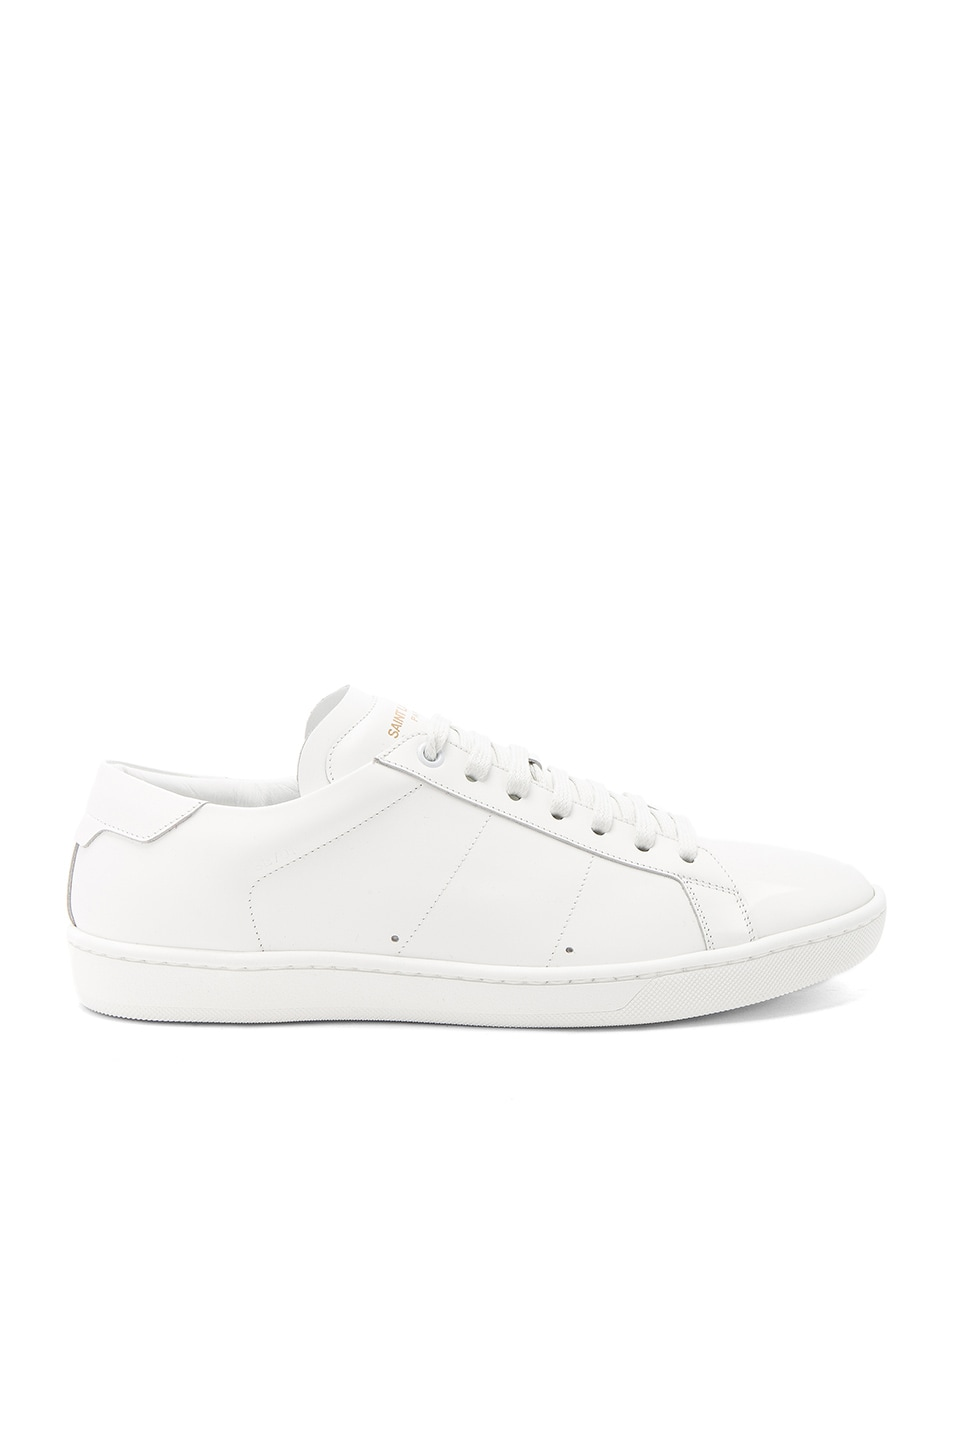 Image 2 of Saint Laurent Court Classic SL/01 Sneakers in White